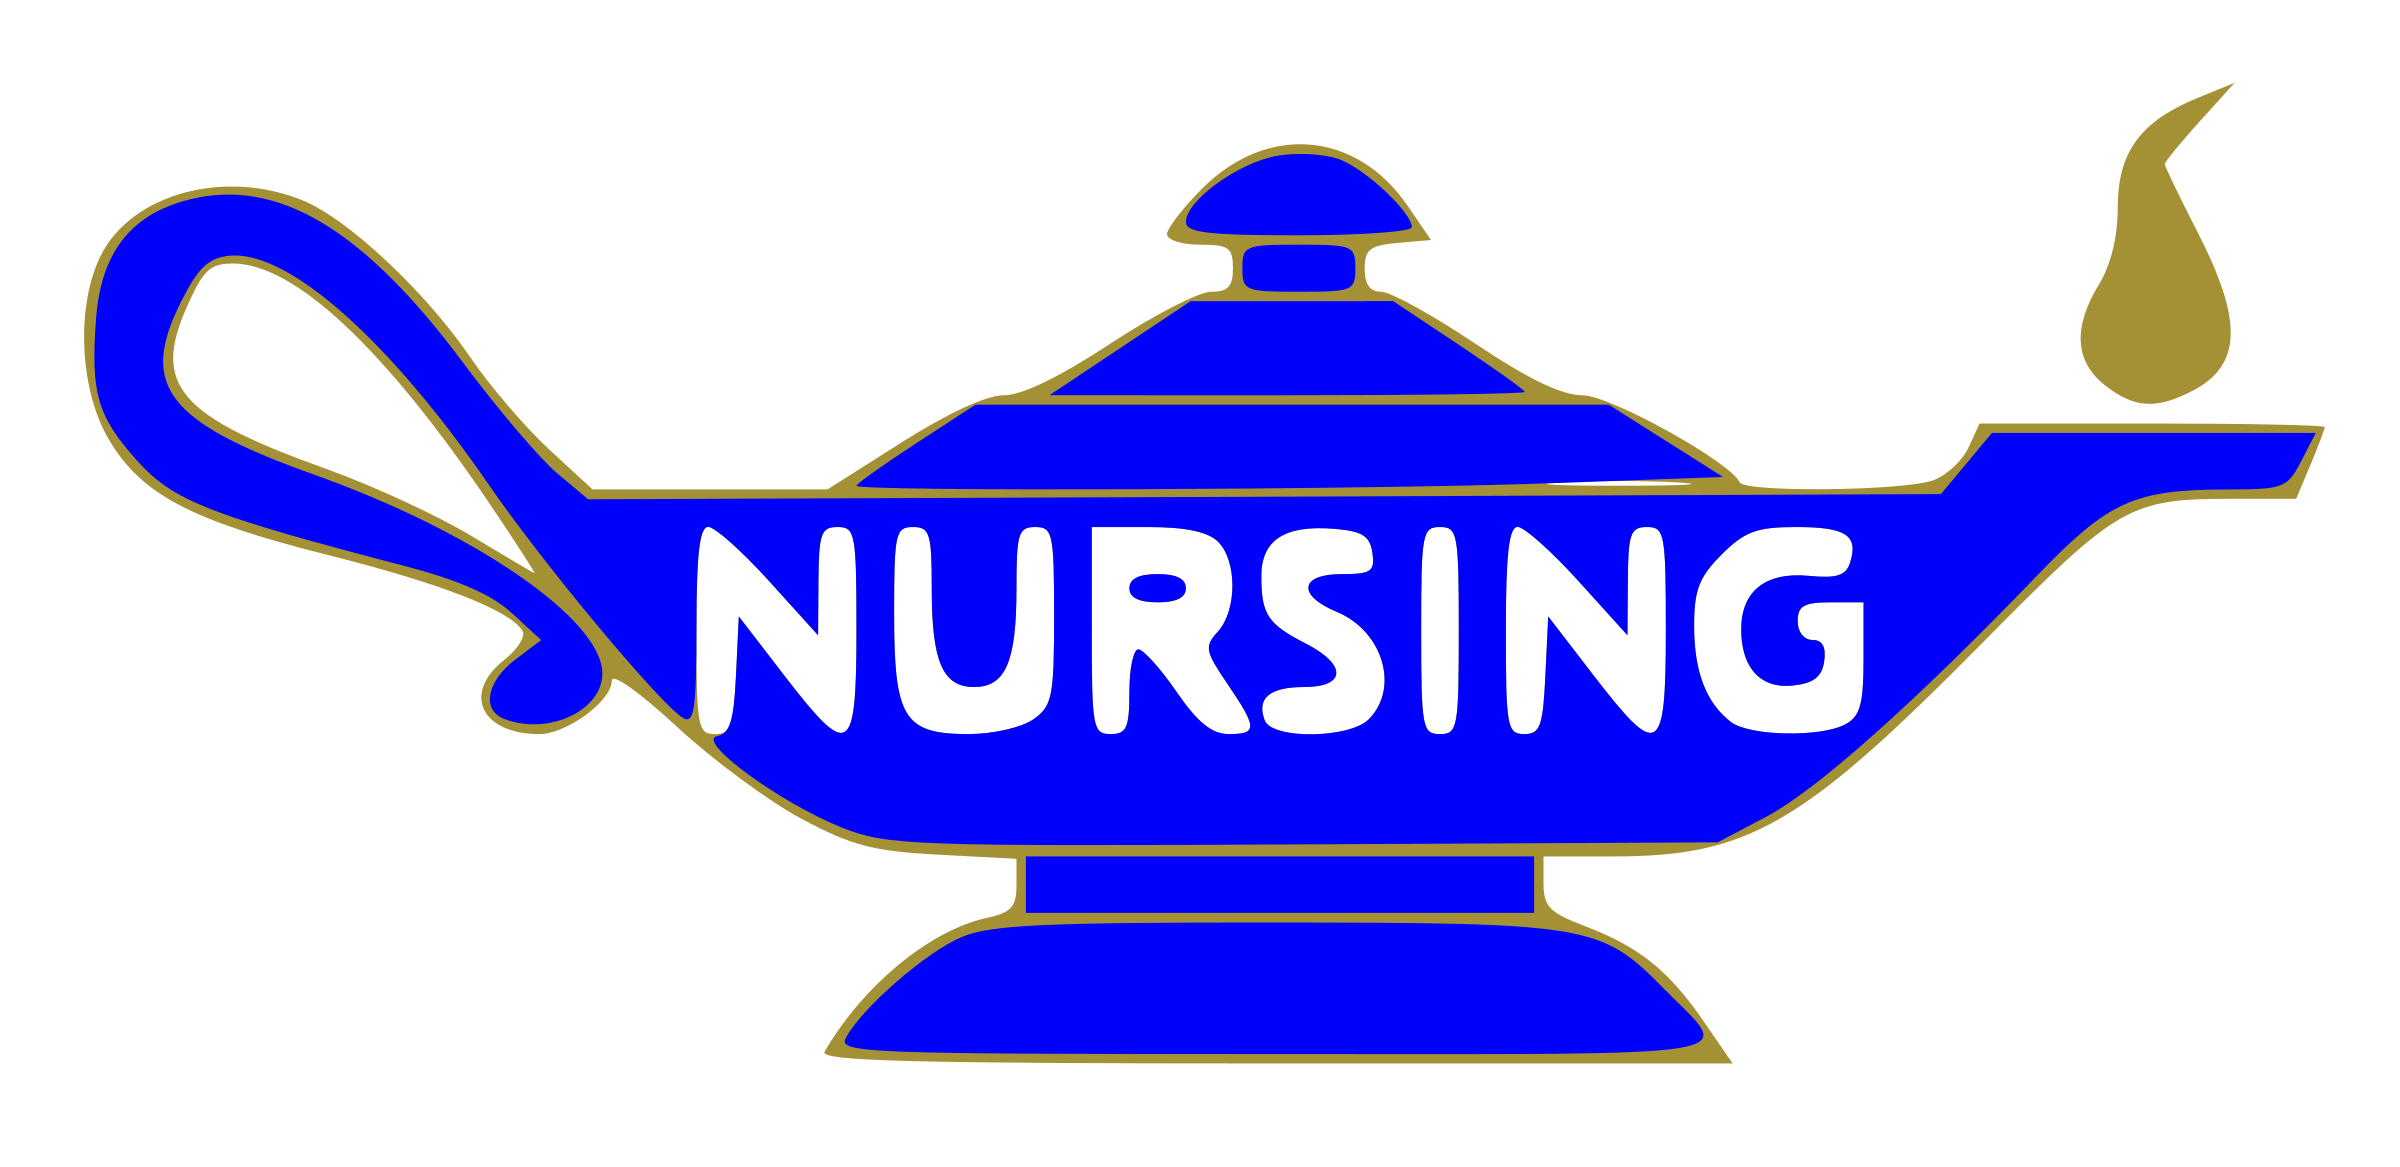 Lamp clipart energy transformation. Nurses are the closest